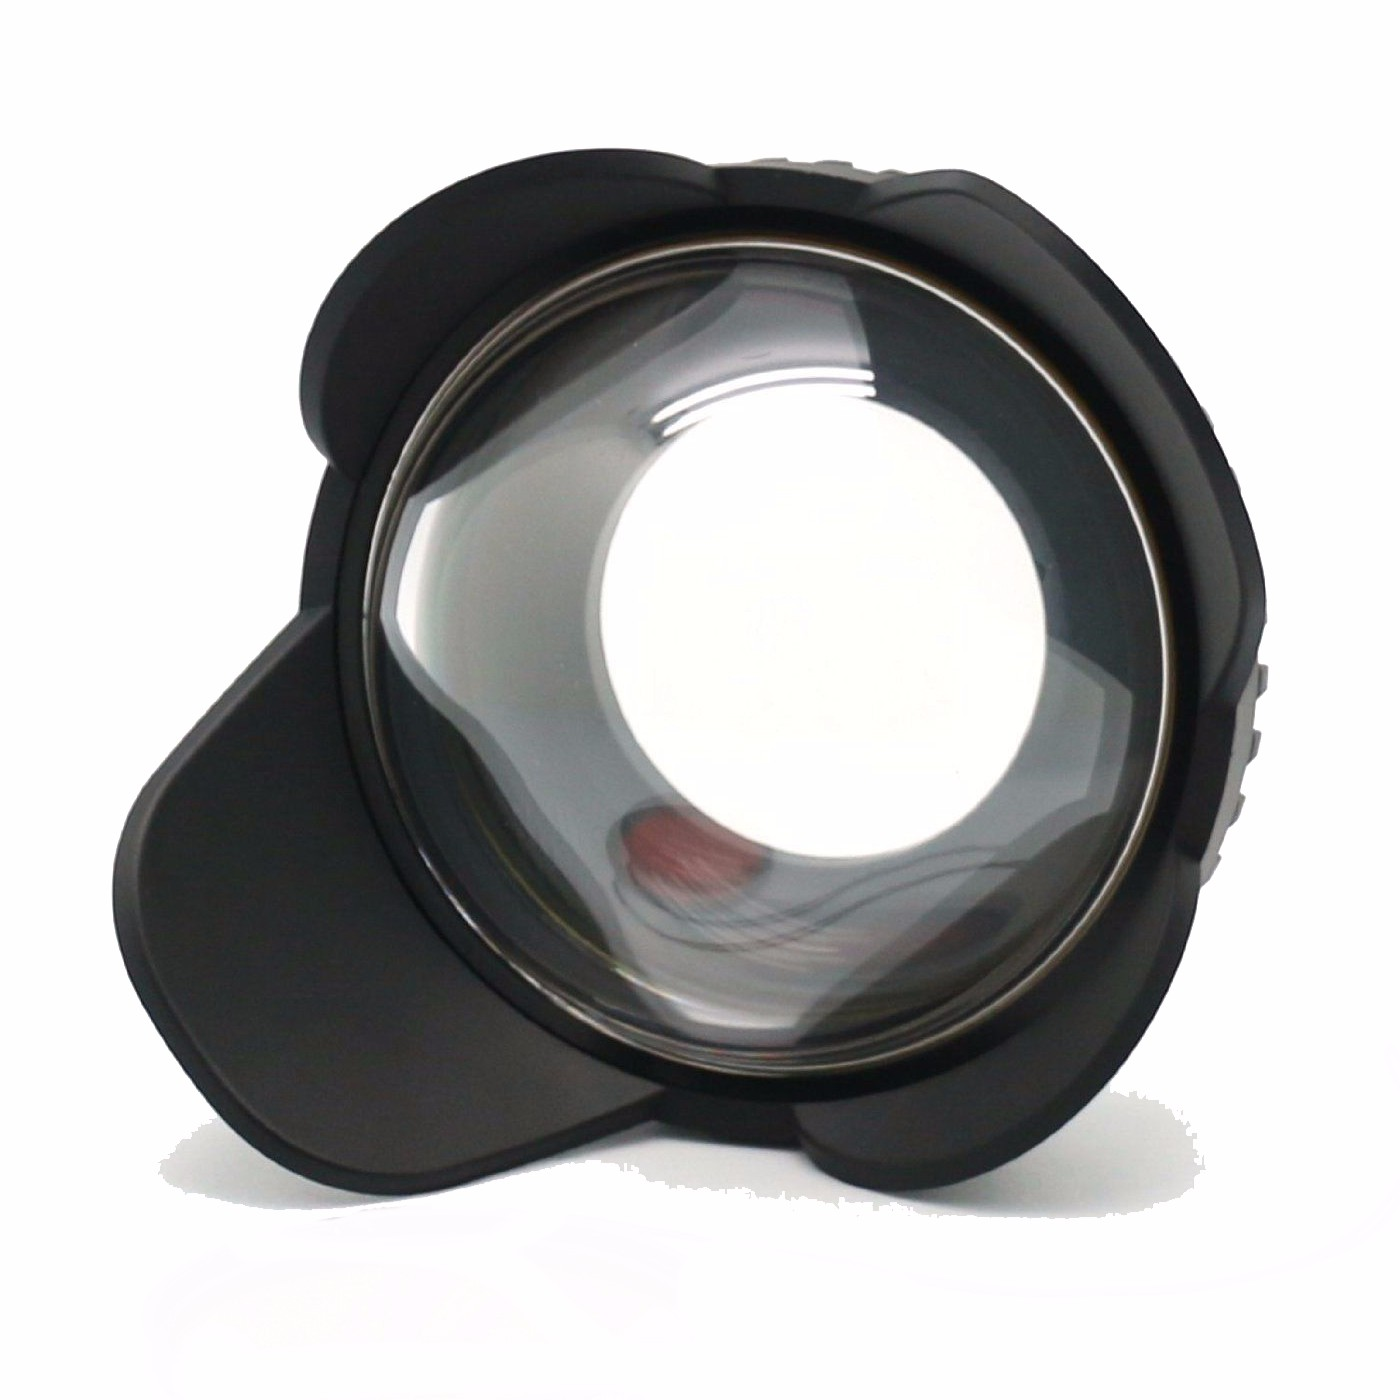 MEIKON 67mm Fisheye Wide Angle Lens Dome Port Shade Cover 60m/197ft Waterproof 67mm Adapter for Camera Diving Housing (Round)MEIKON 67mm Fisheye Wide Angle Lens Dome Port Shade Cover 60m/197ft Waterproof 67mm Adapter for Camera Diving Housing (Round)